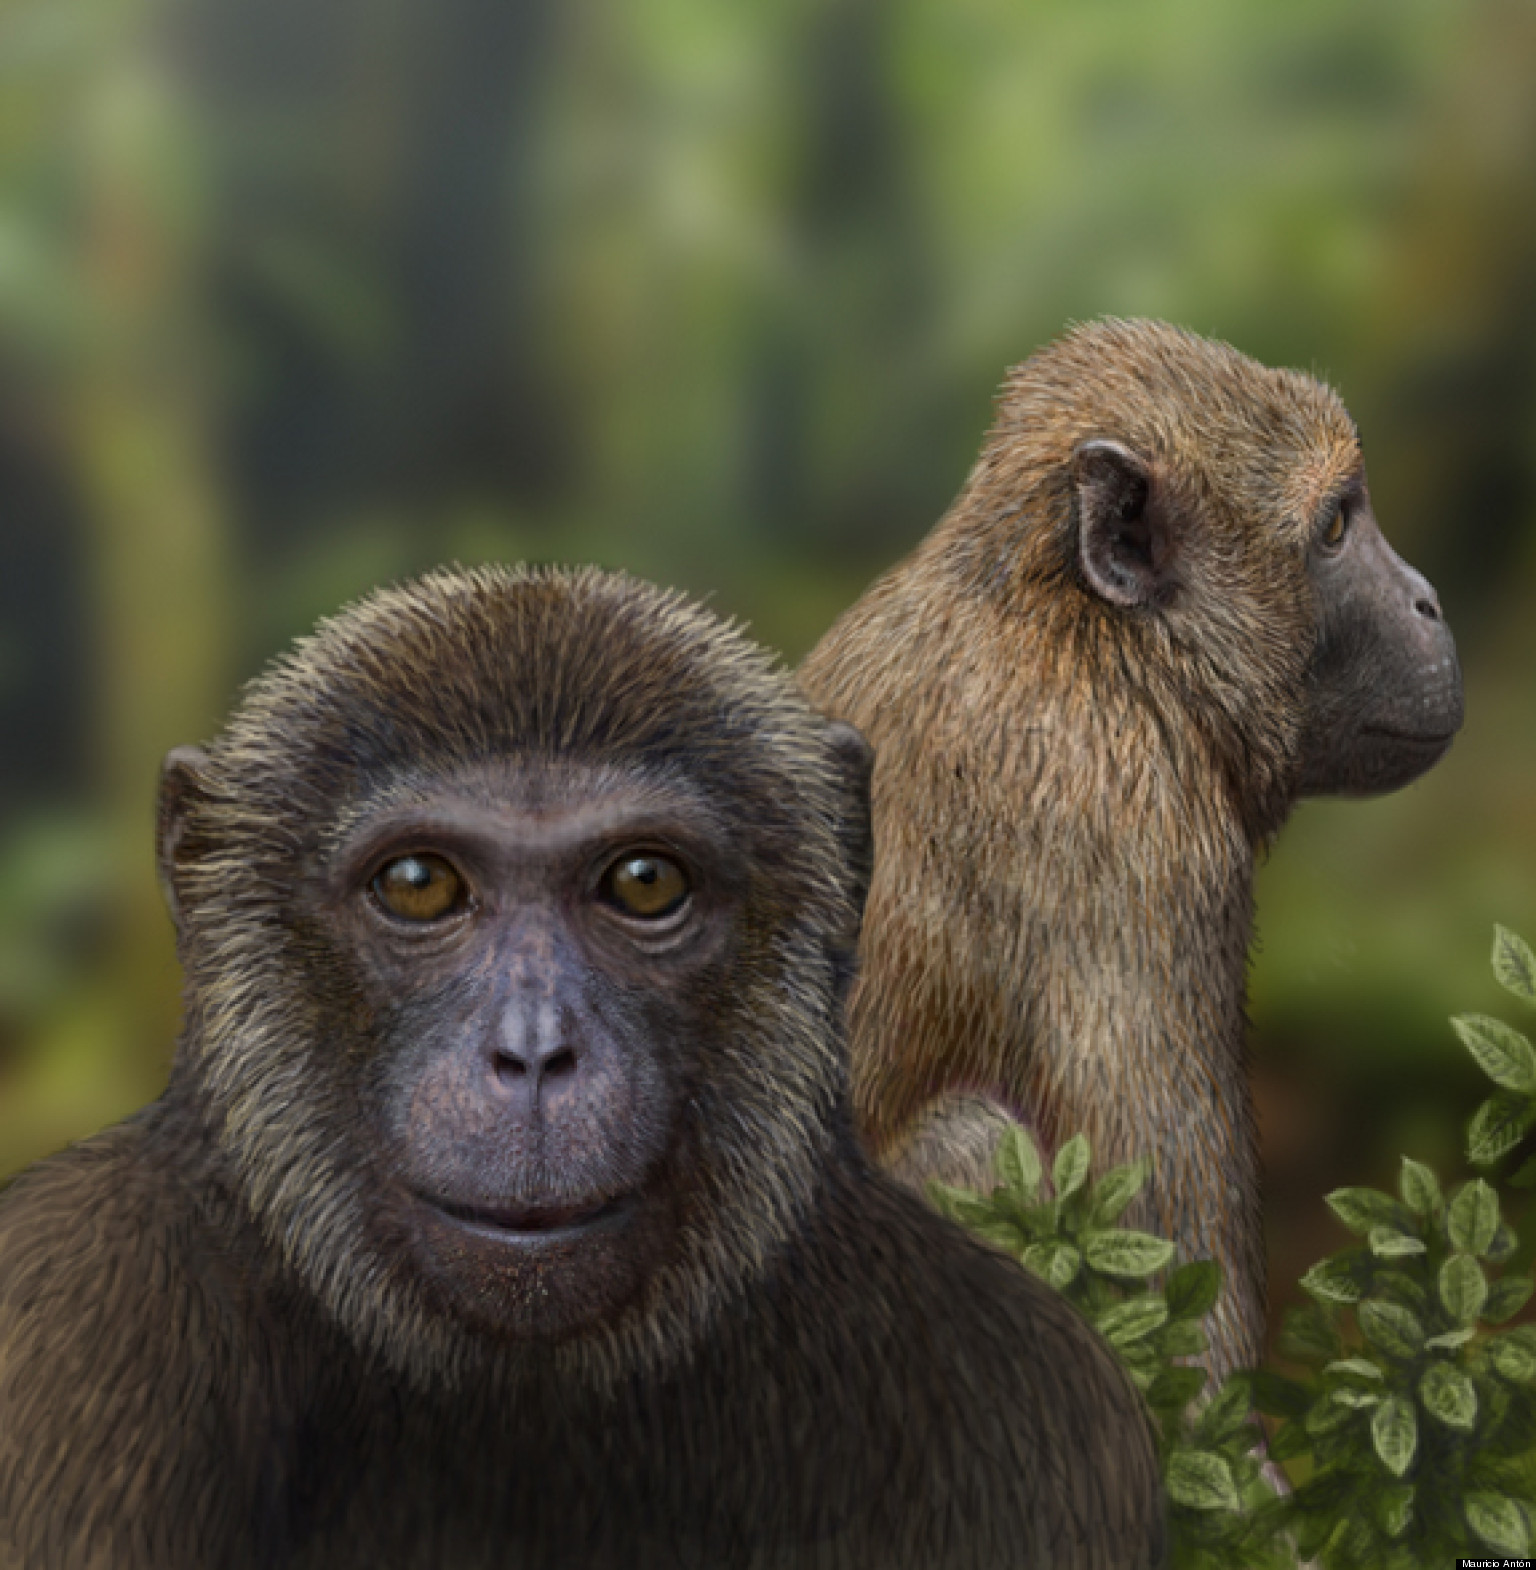 MONKEY NEWS - Capuchins Primates Incorporated